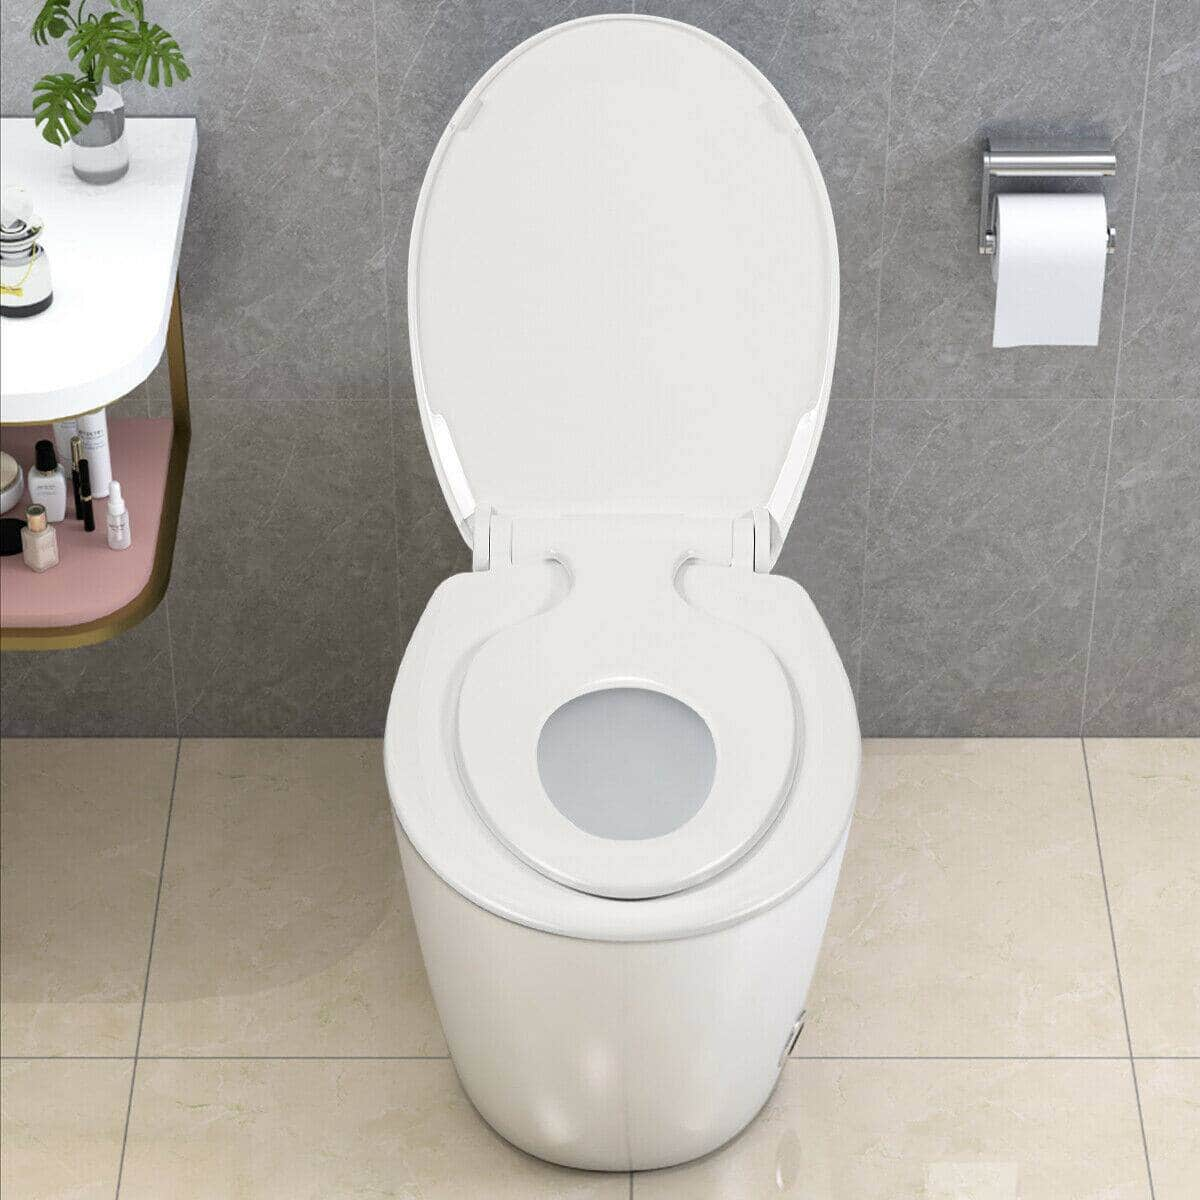 Toddlers & Adult Round Toilet Seat with Built-in Potty $27.95 + FS